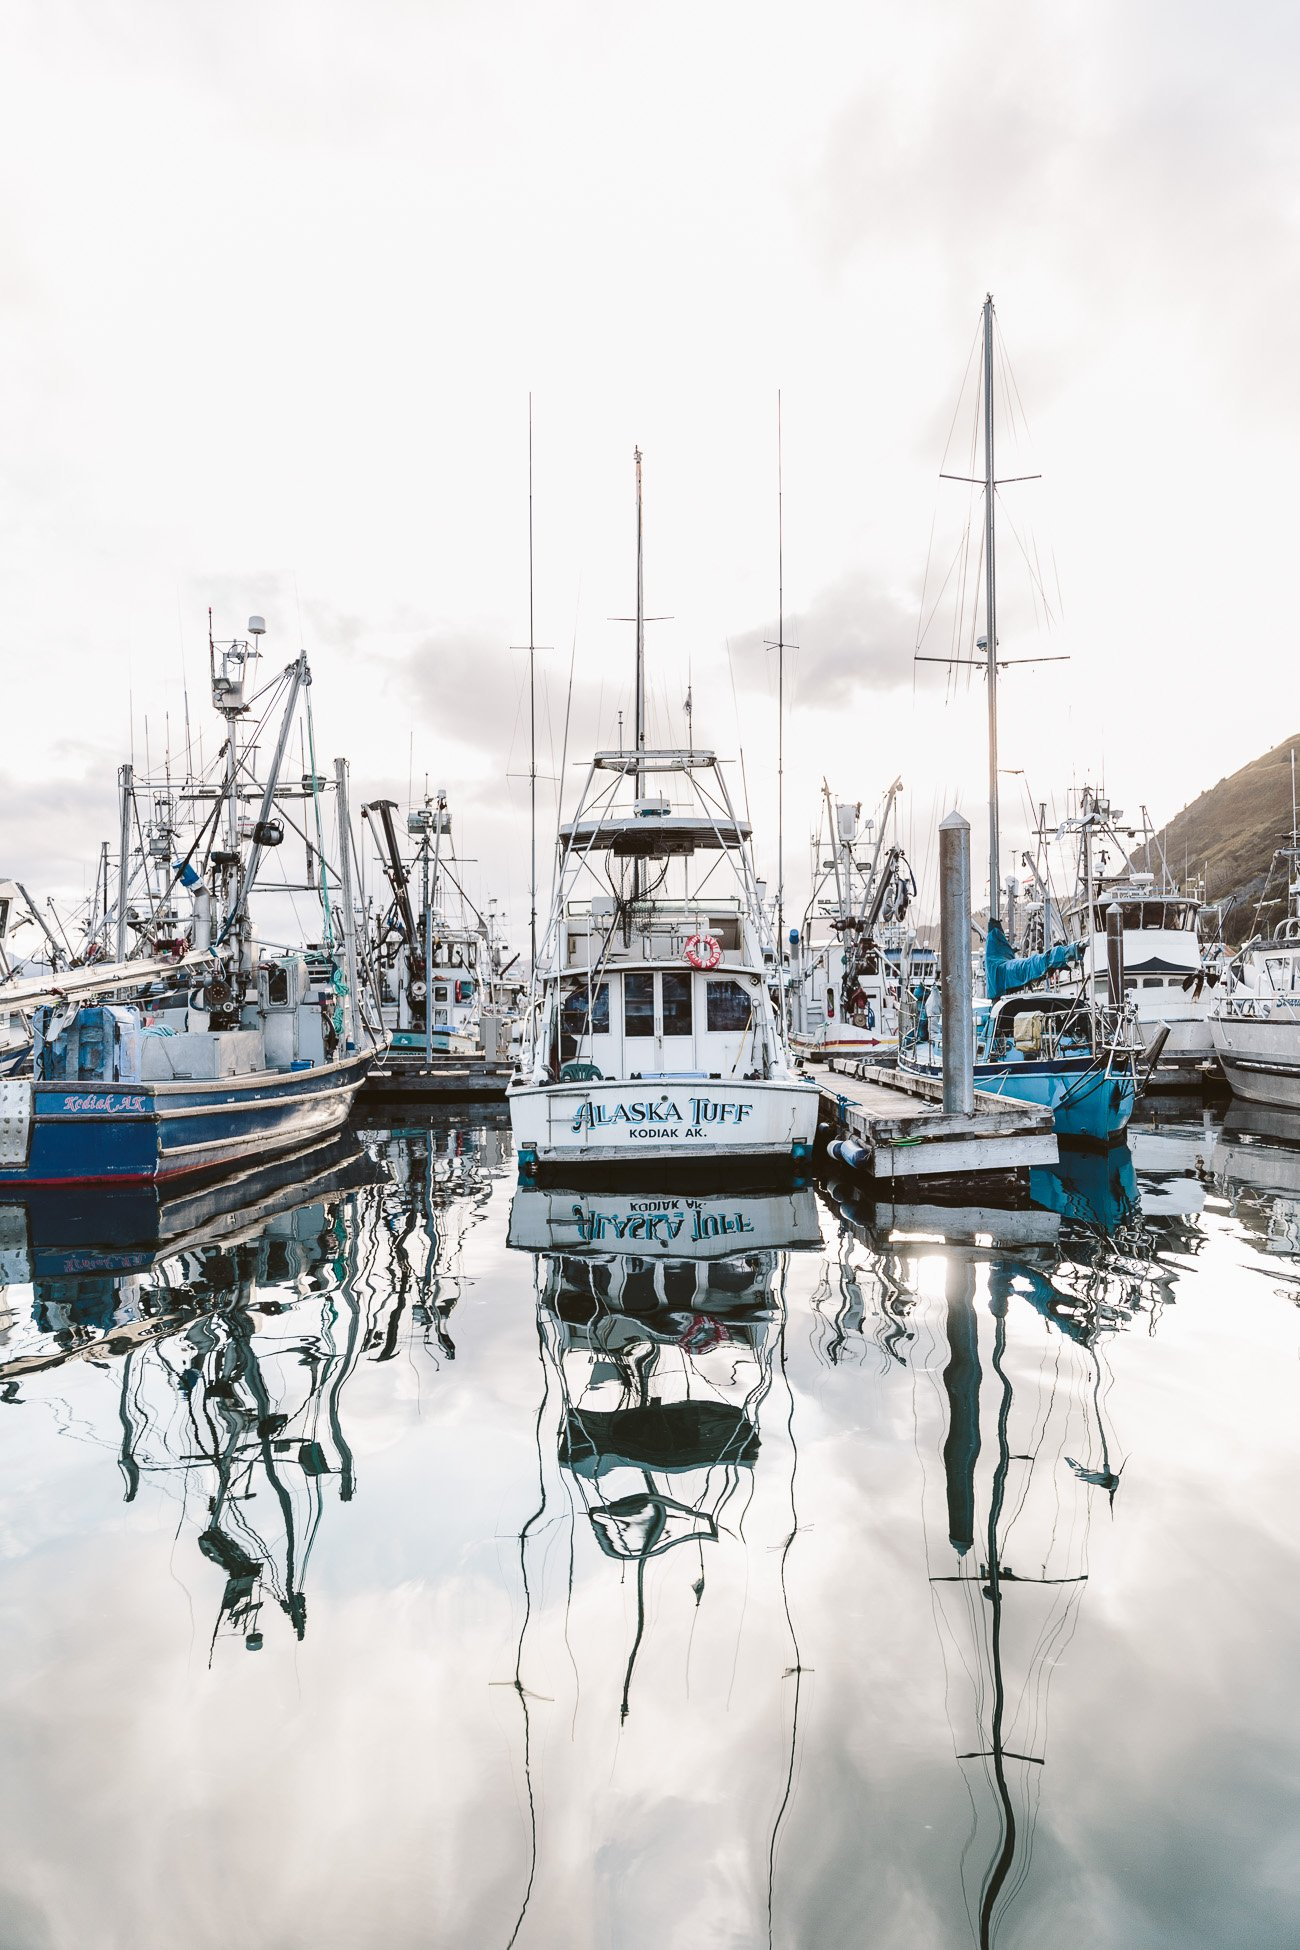 Boats in Kodiak Island's Harbour Alaska